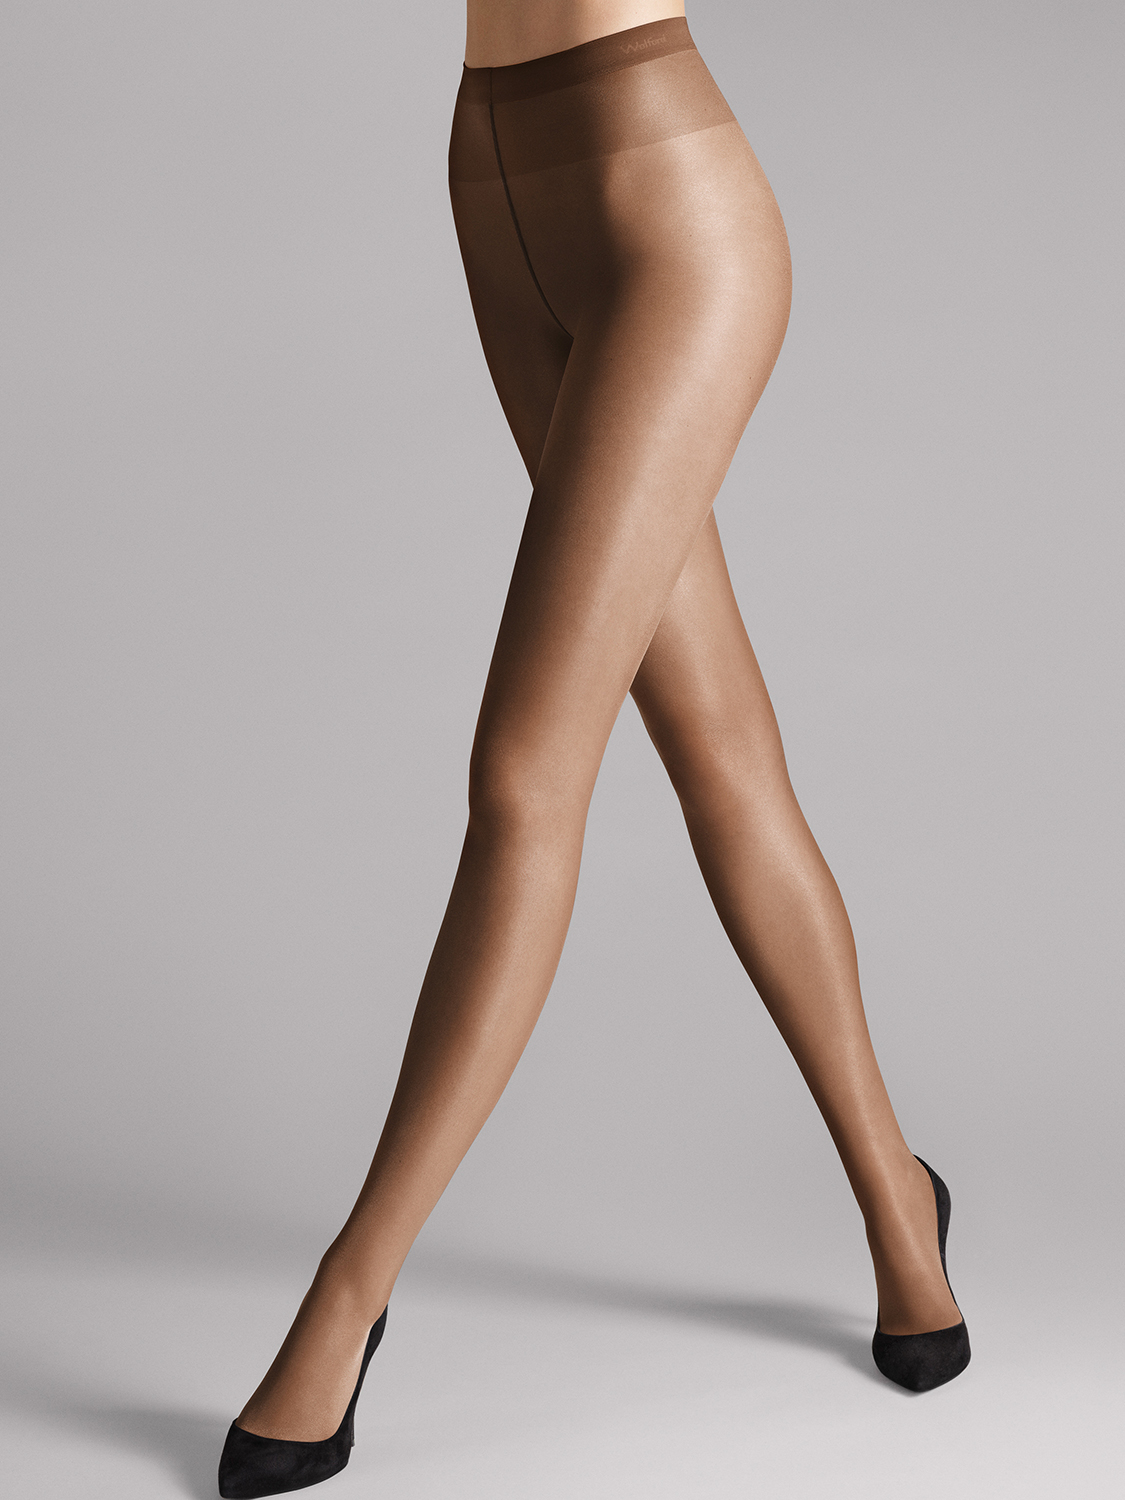 satin touch 20 tights от Wolford